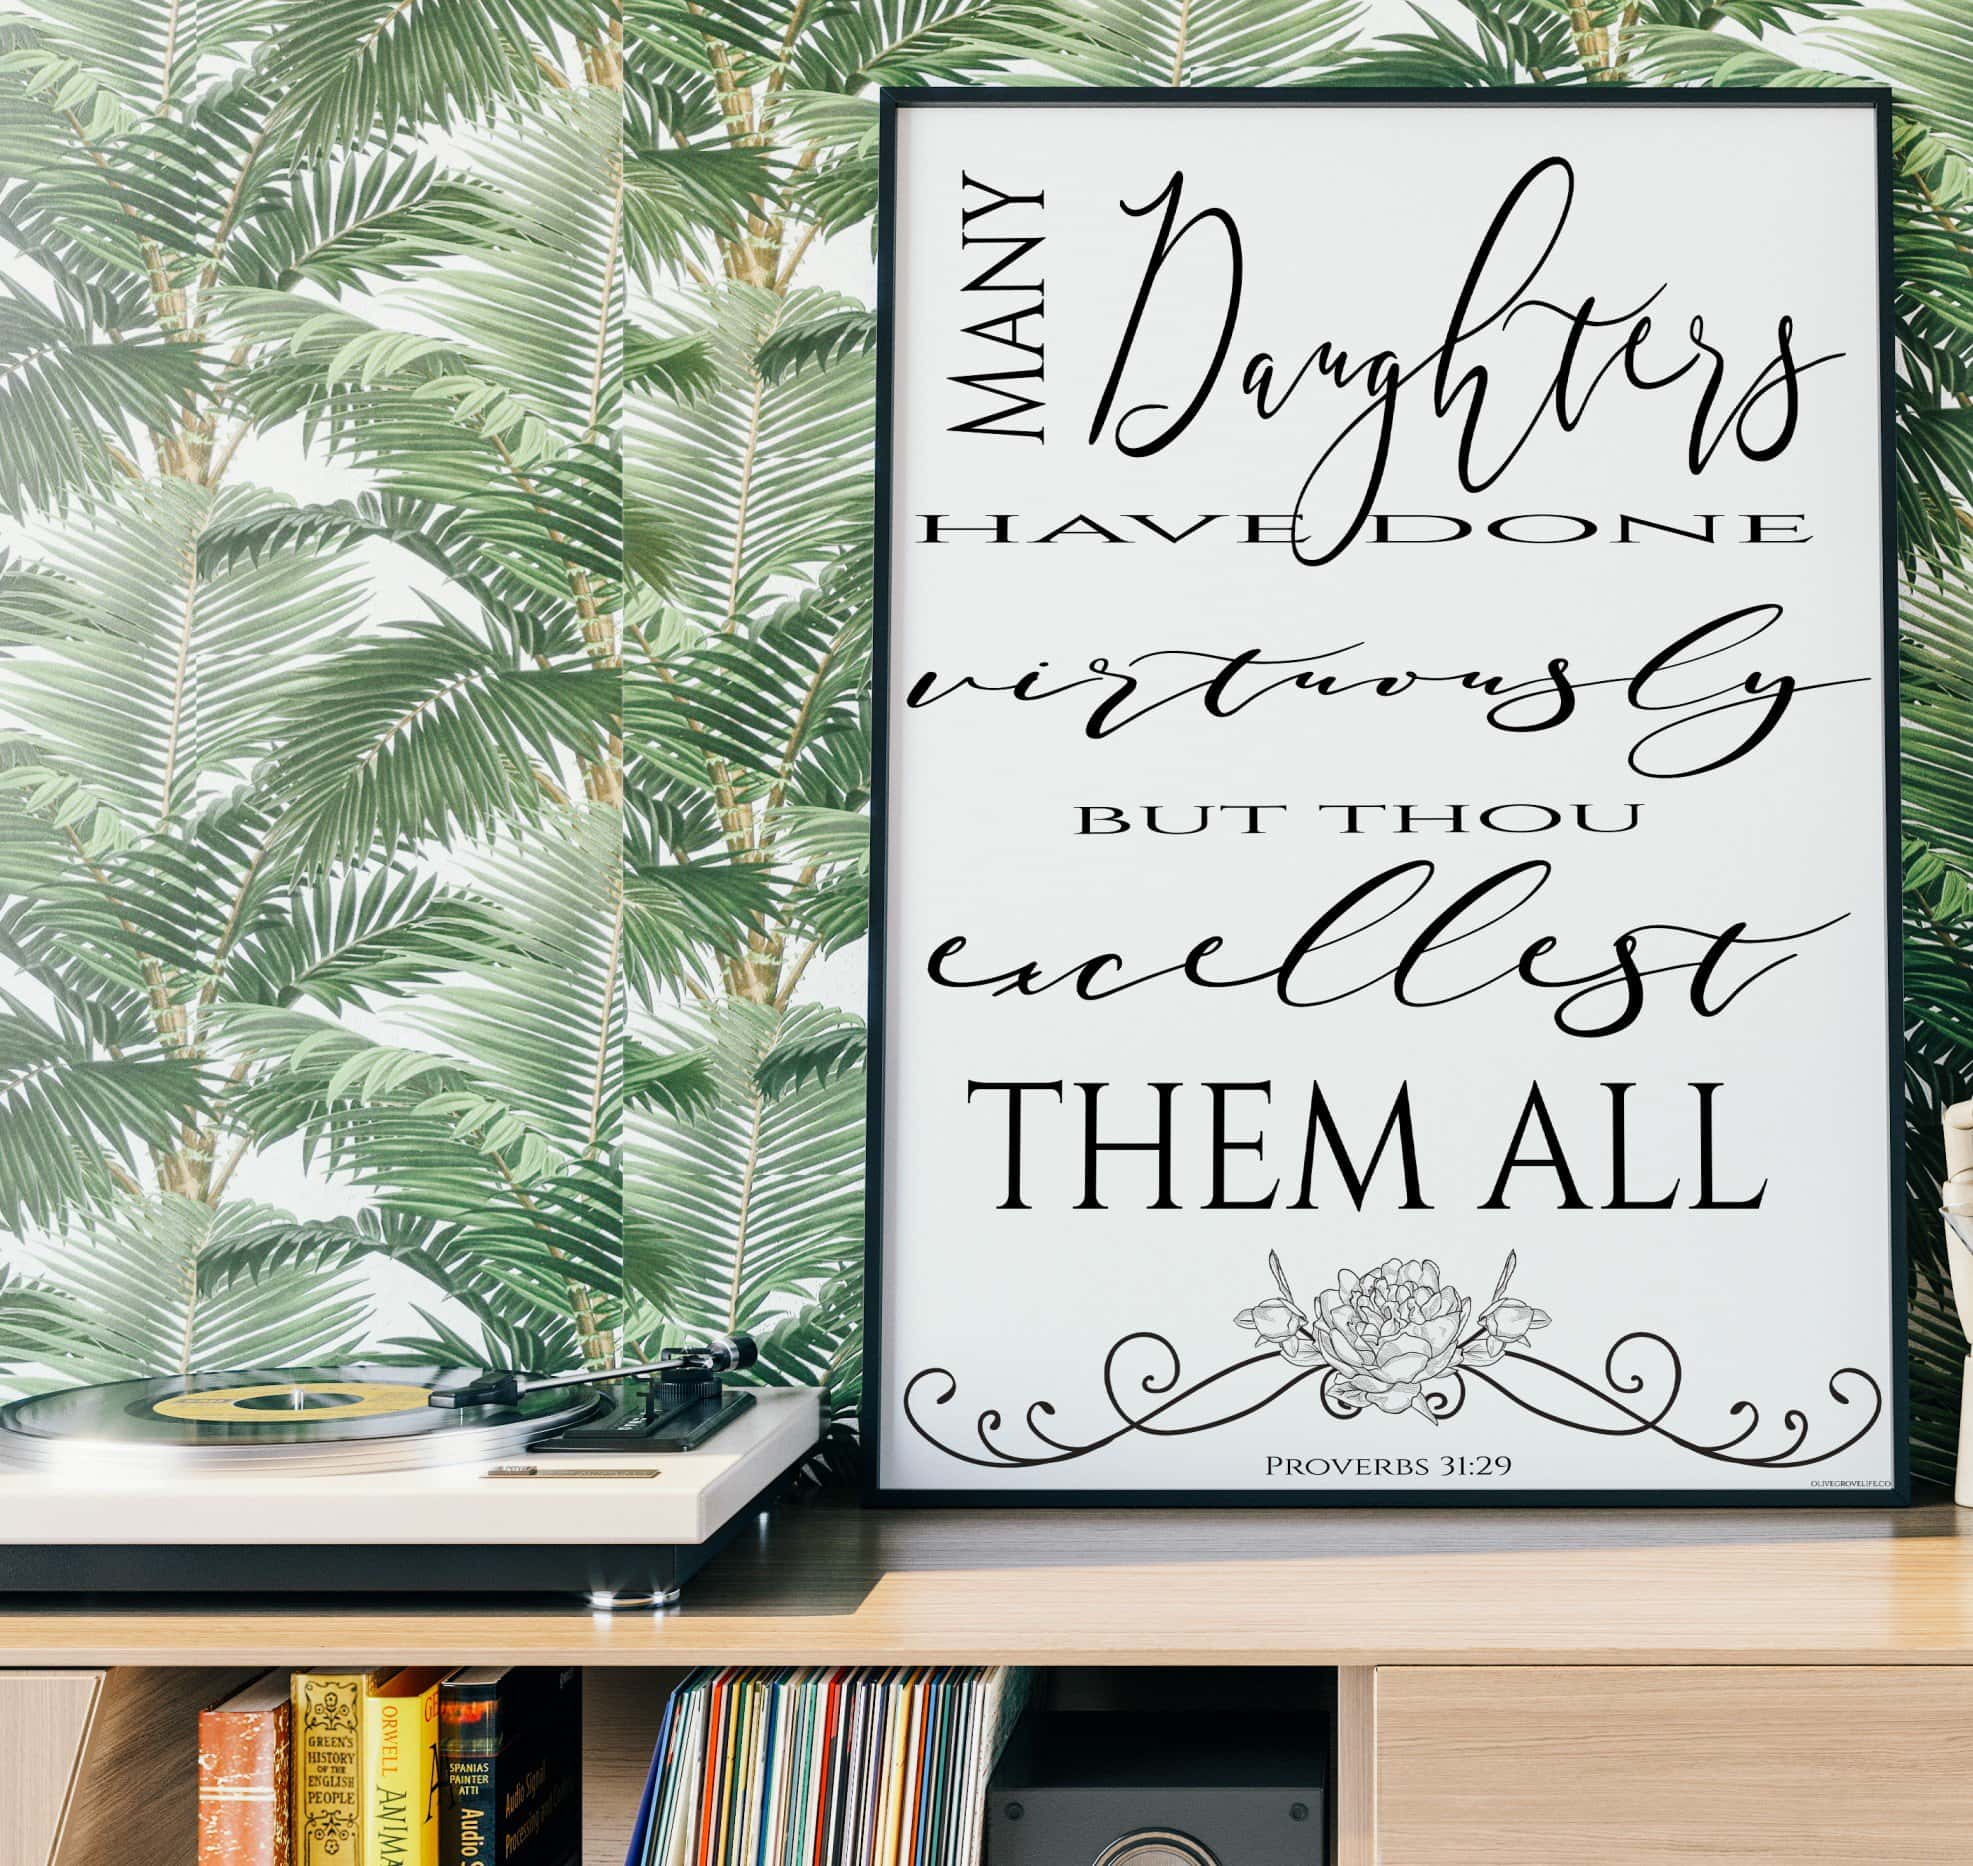 Proverbs 31 And 29 - Art Print 18x24